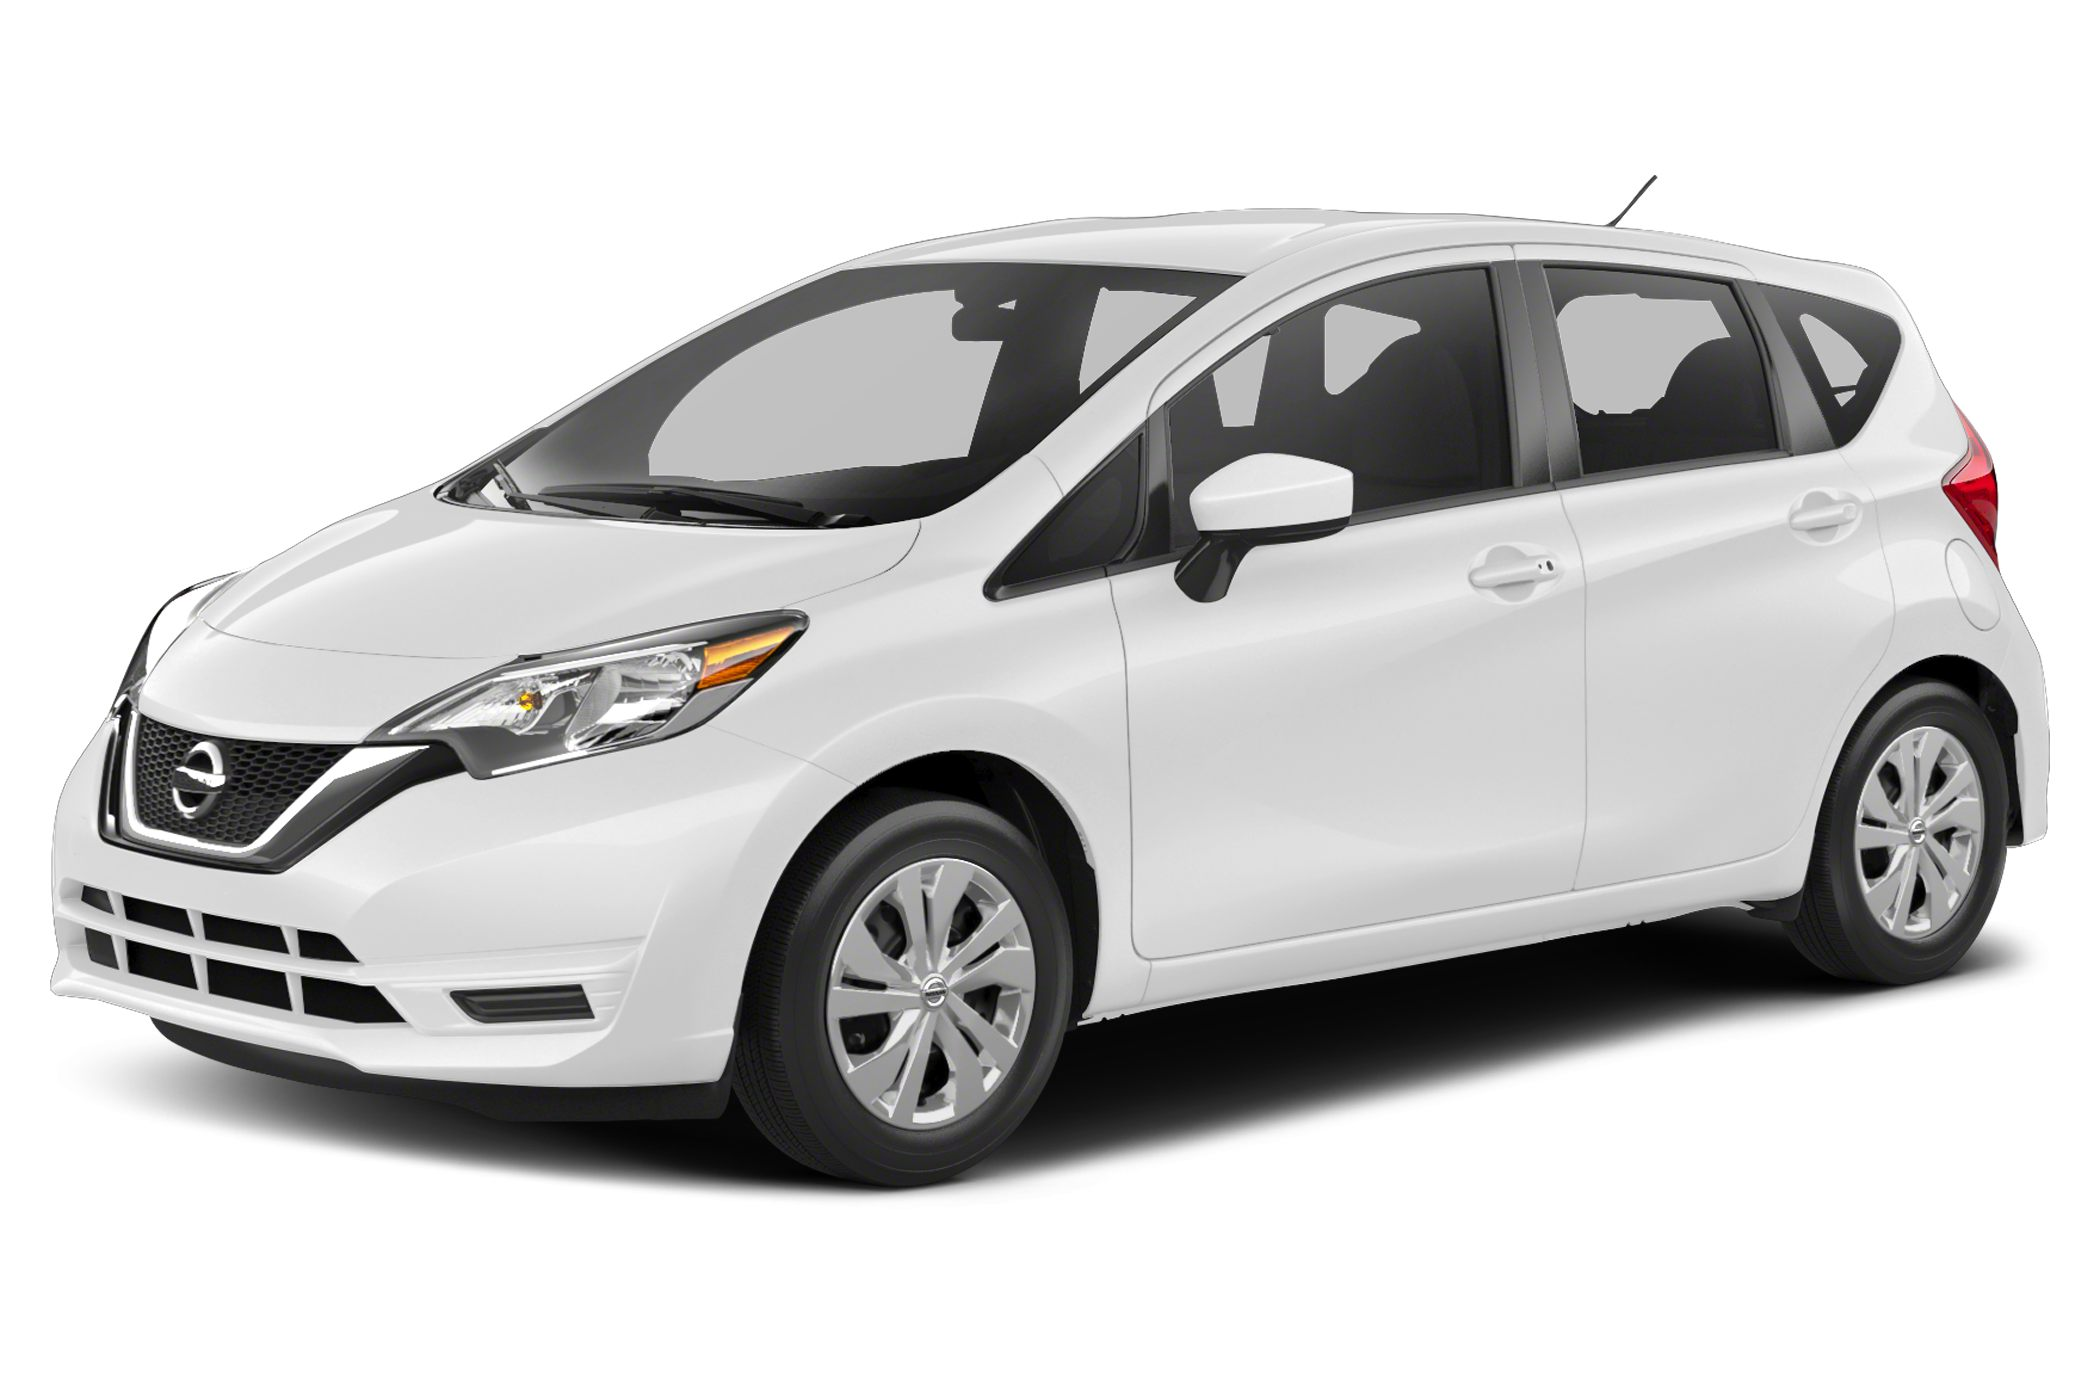 2017 nissan versa note deals prices incentives leases overview carsdirect. Black Bedroom Furniture Sets. Home Design Ideas